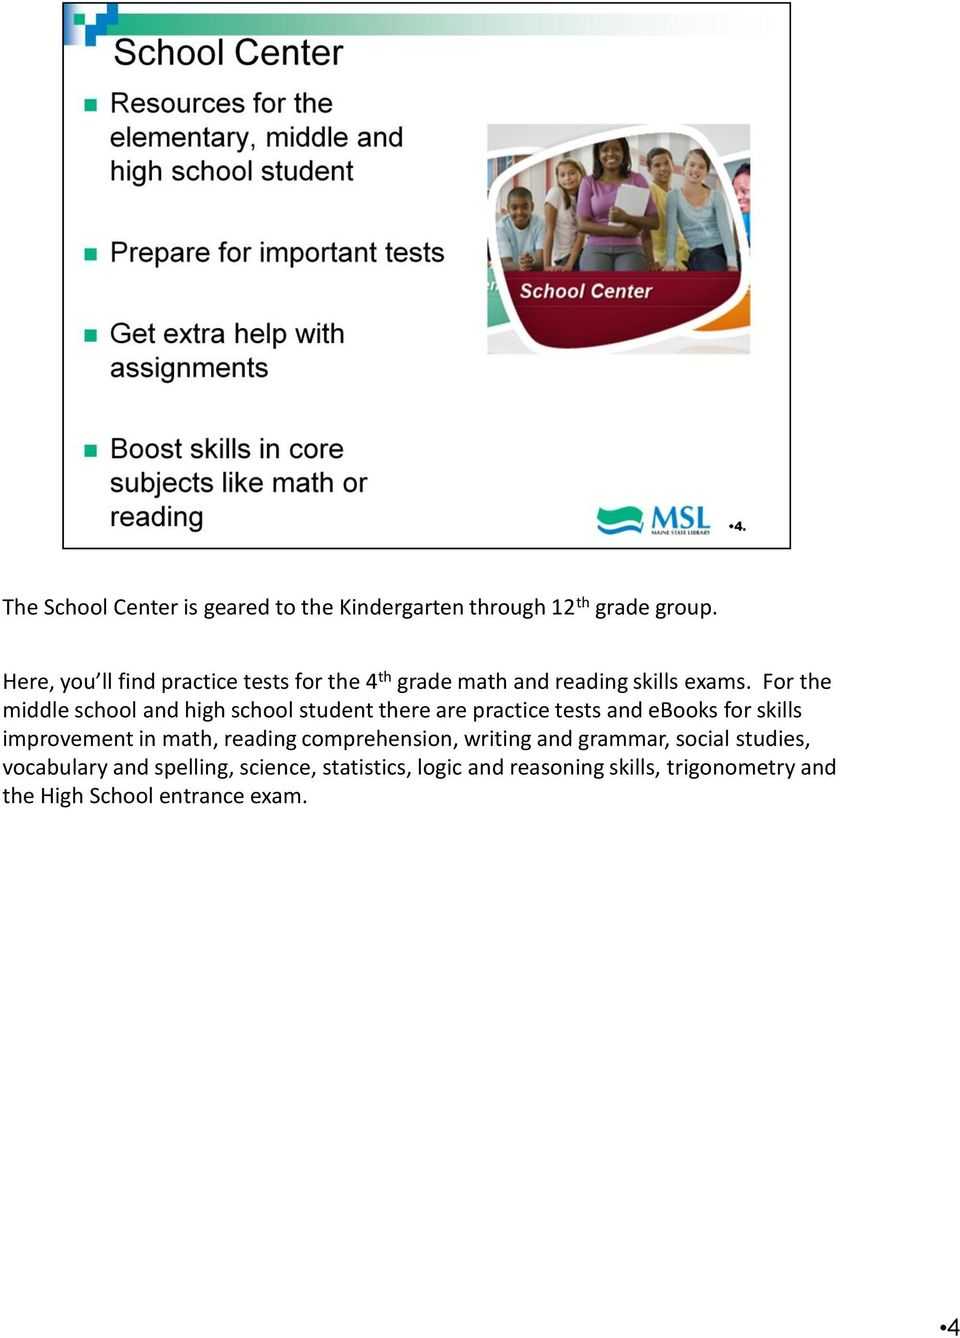 For the middle school and high school student there are practice tests and ebooks for skills improvement in math,